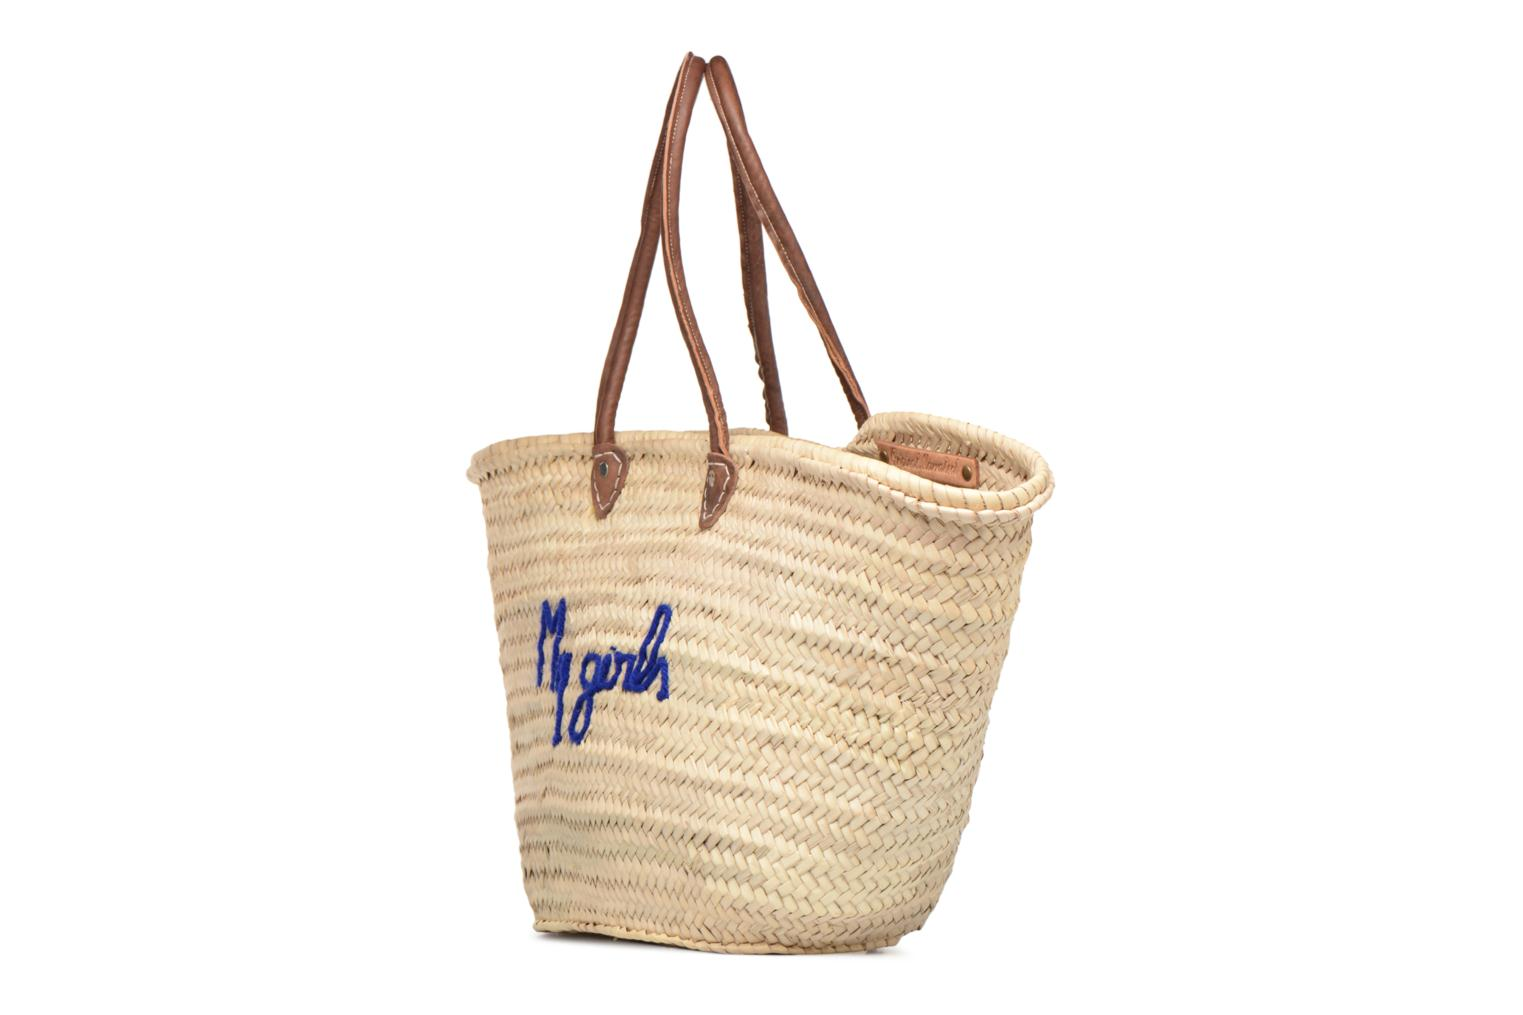 GIRLS Bleu MY PANIER Original Marrakech marine wqt1pgp